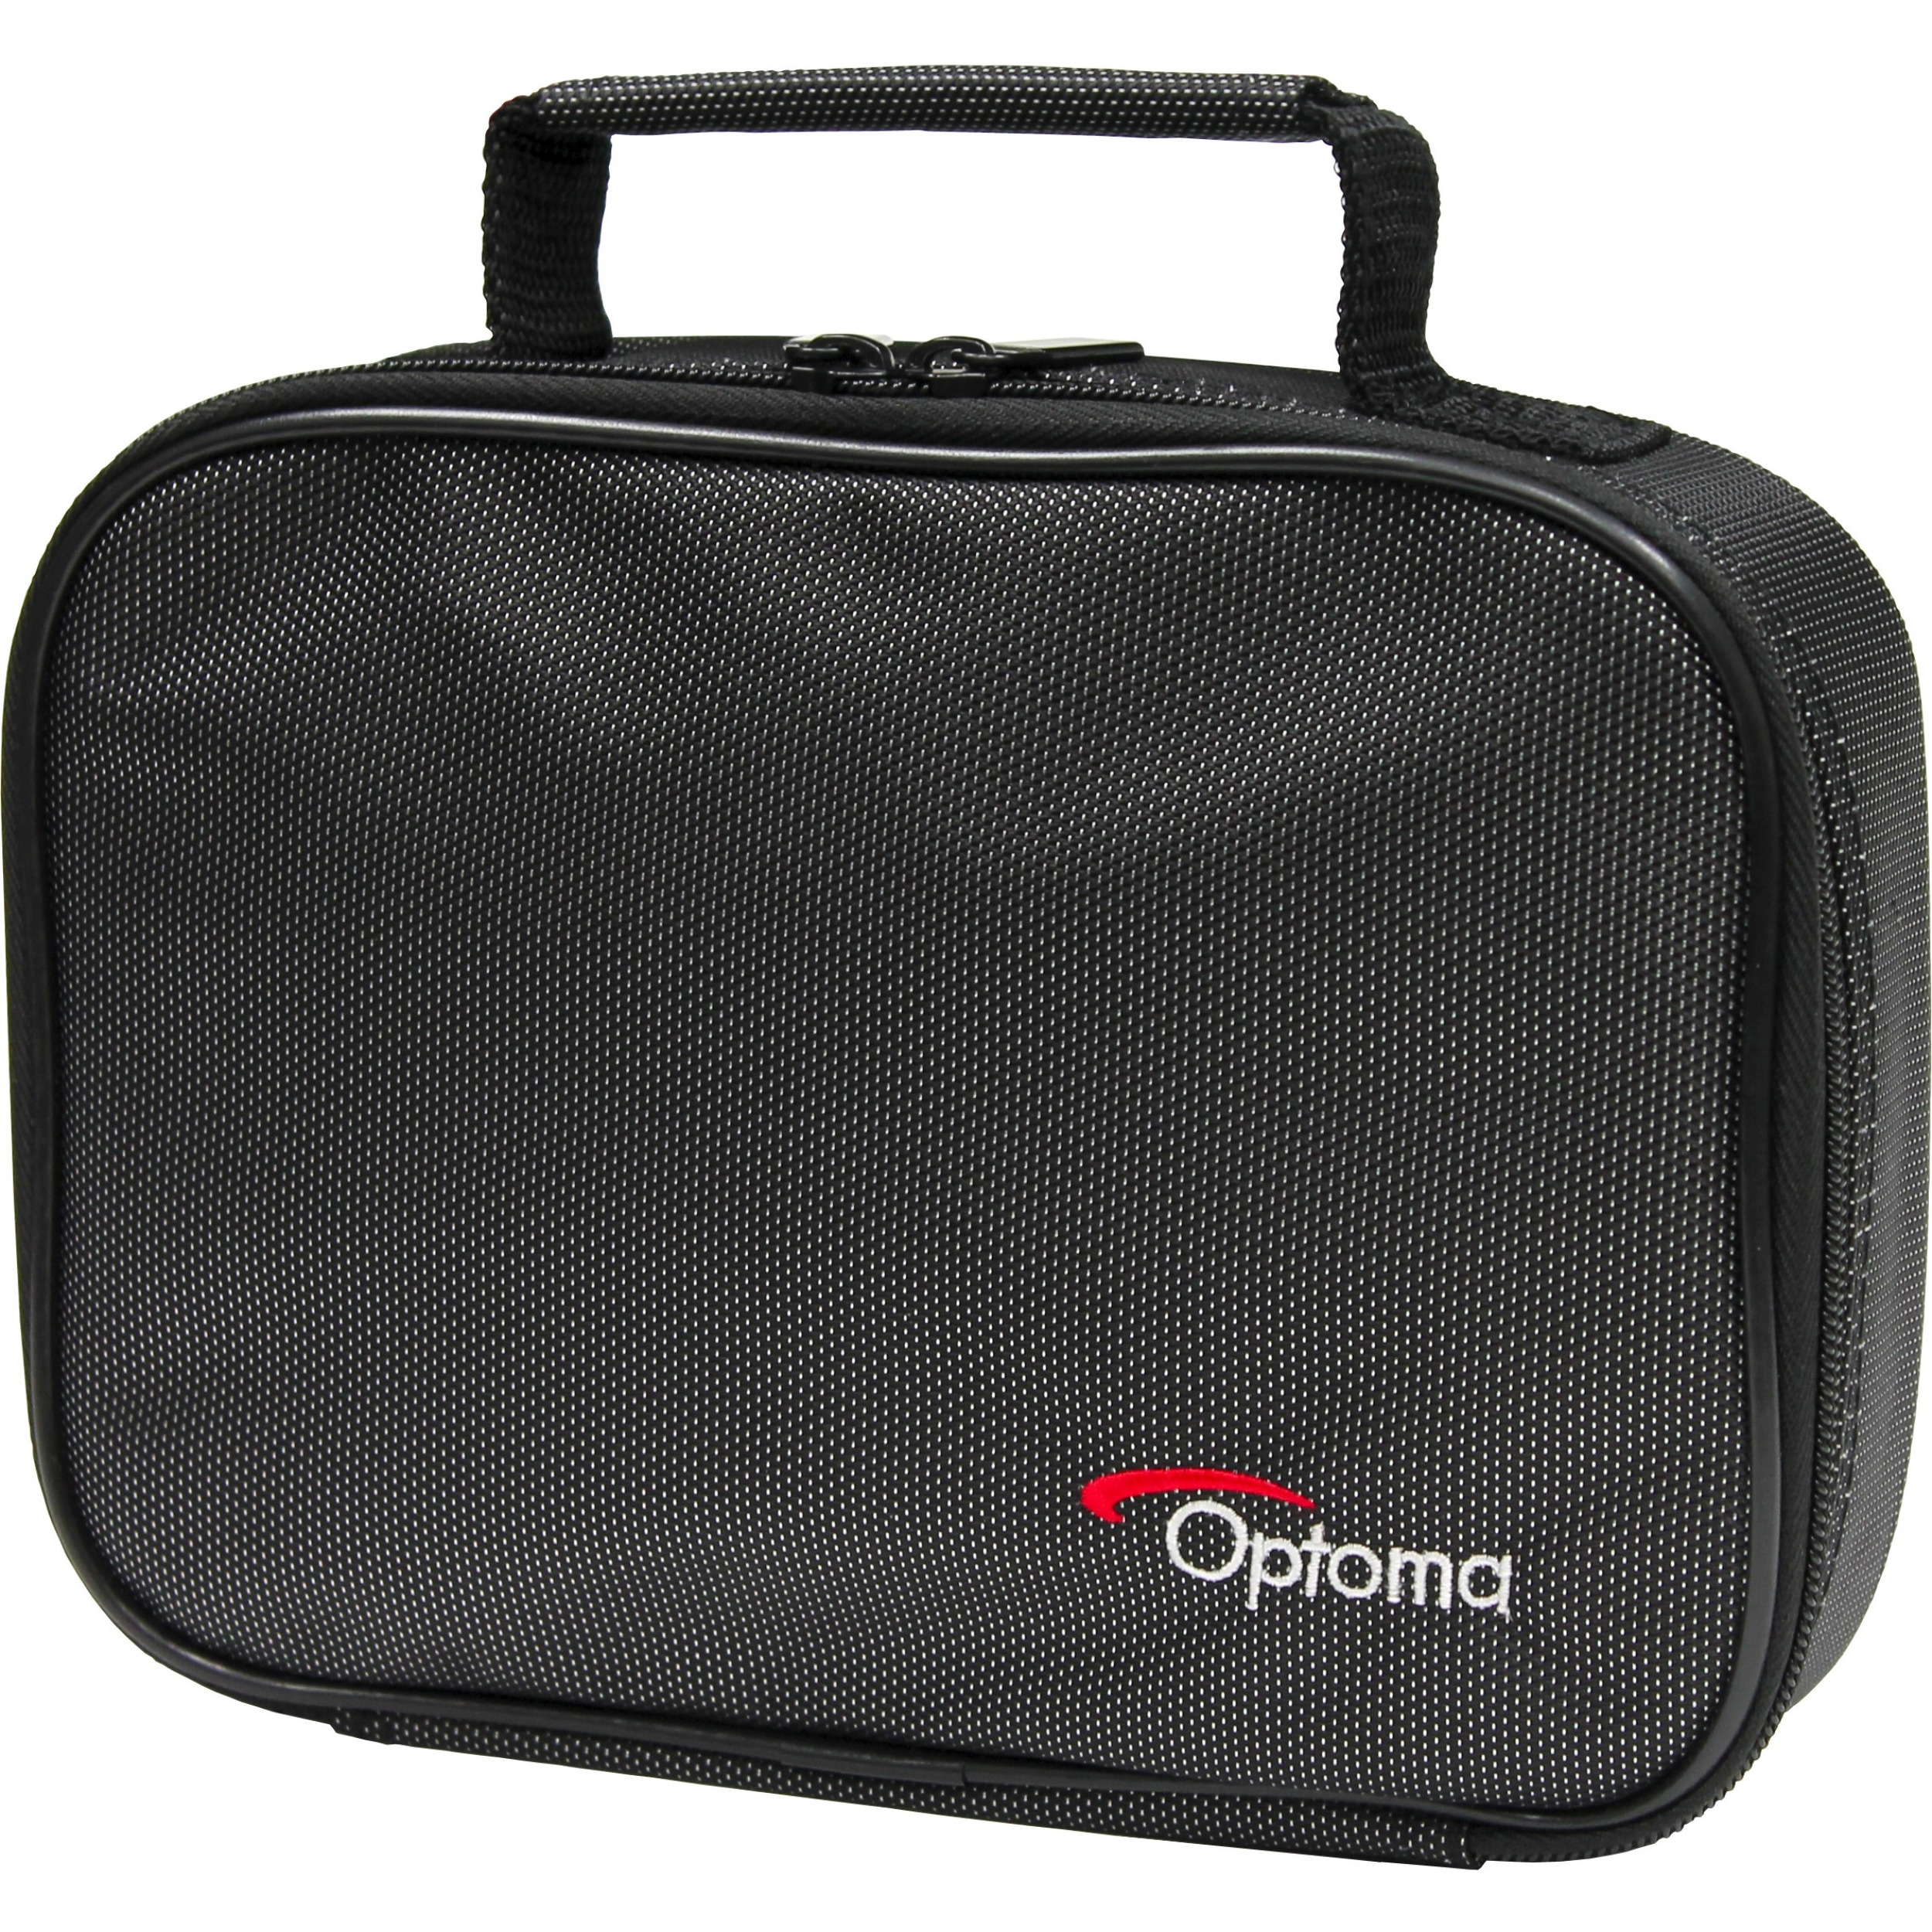 CARRYING CASE SP.8UA04GC01